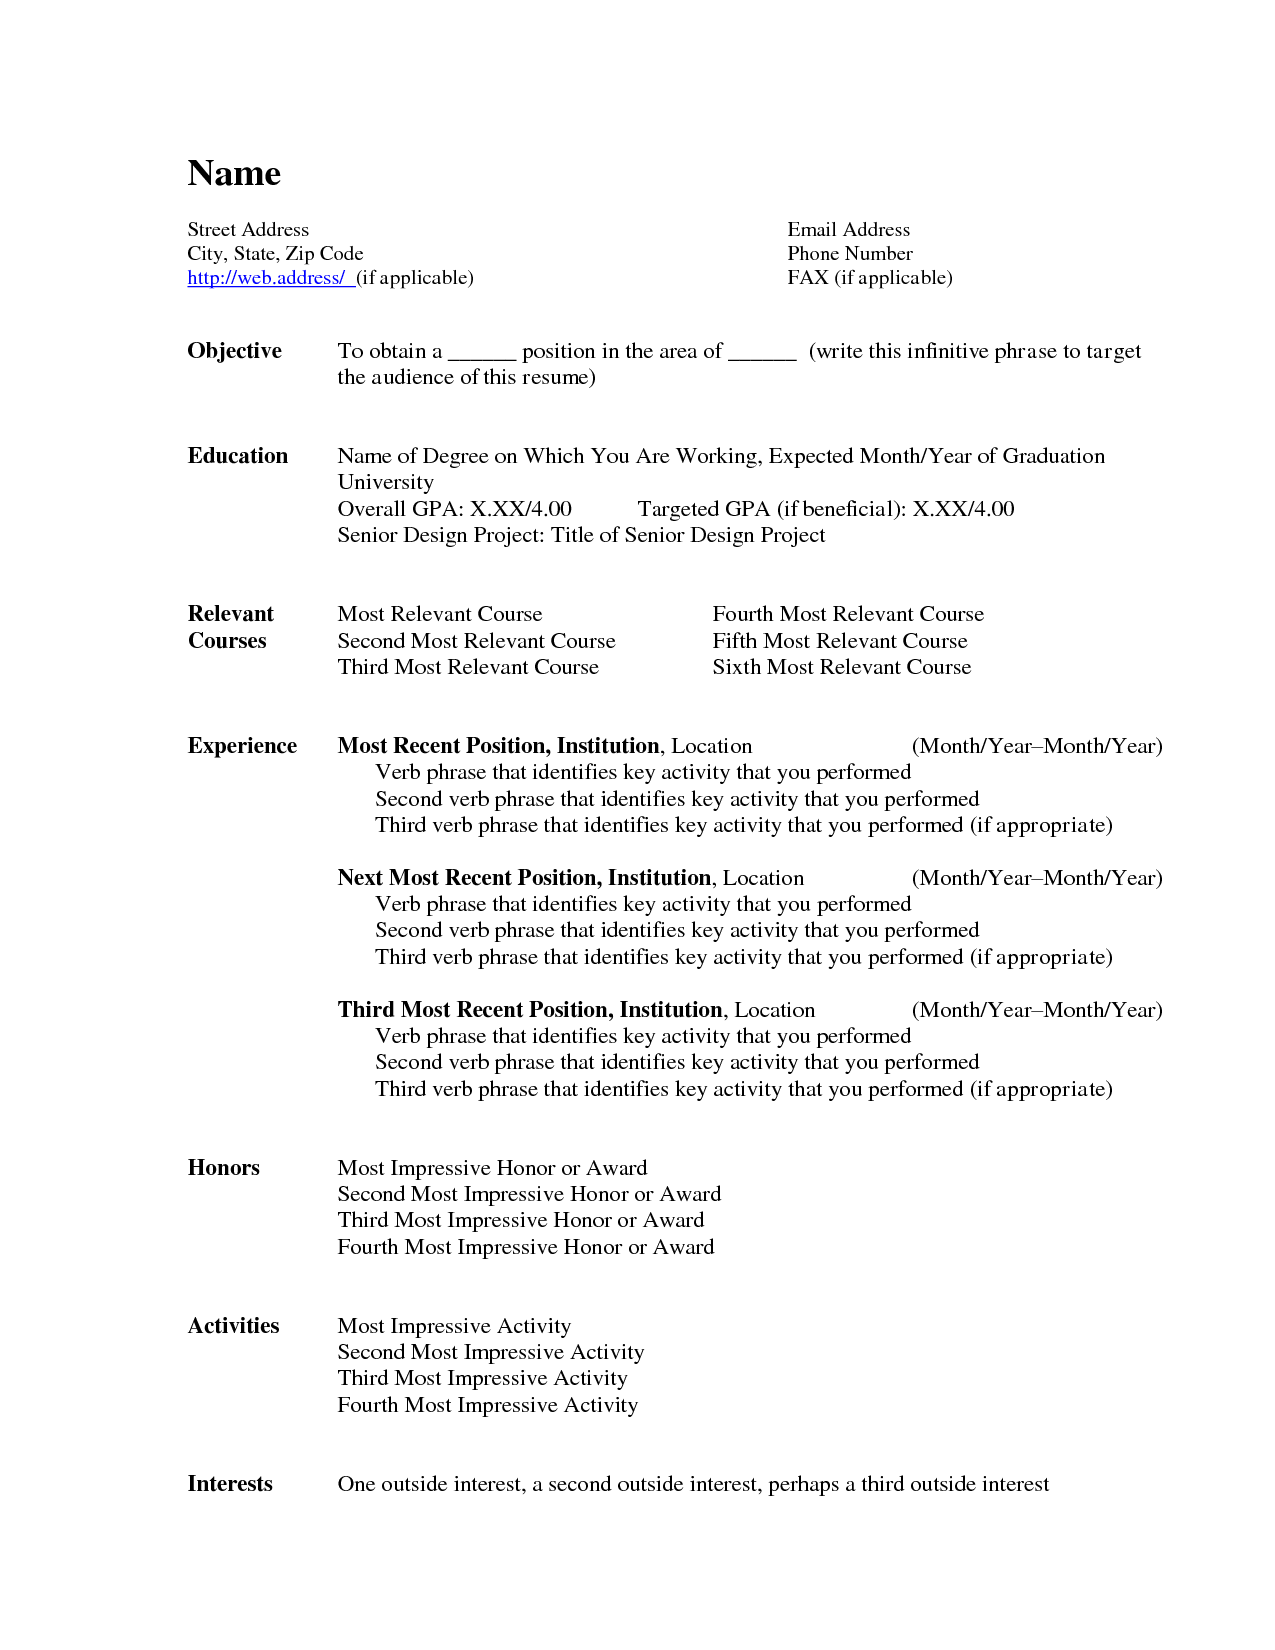 Microsoft Word Resume Template Builder Http Job  Latest Resume Format For Teachers